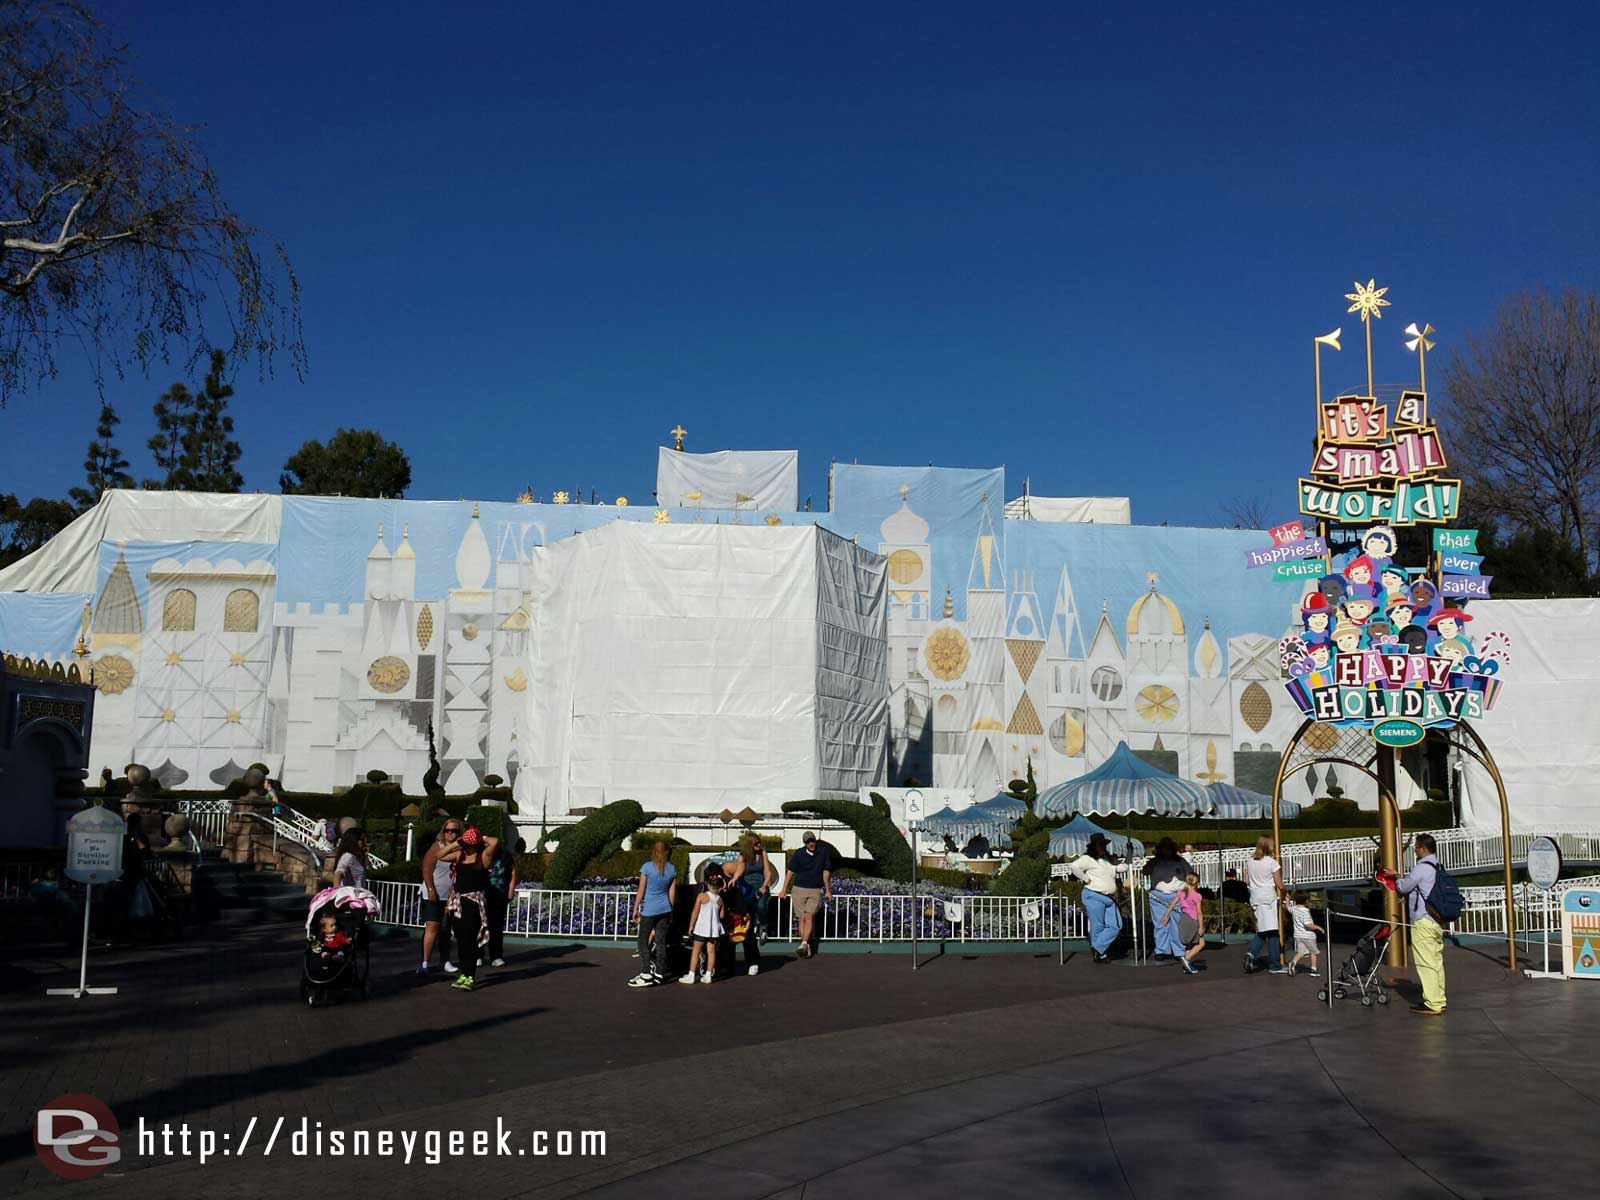 The Small World clock is underwraps this week & a picture up on the main scaffolding #Disneyland